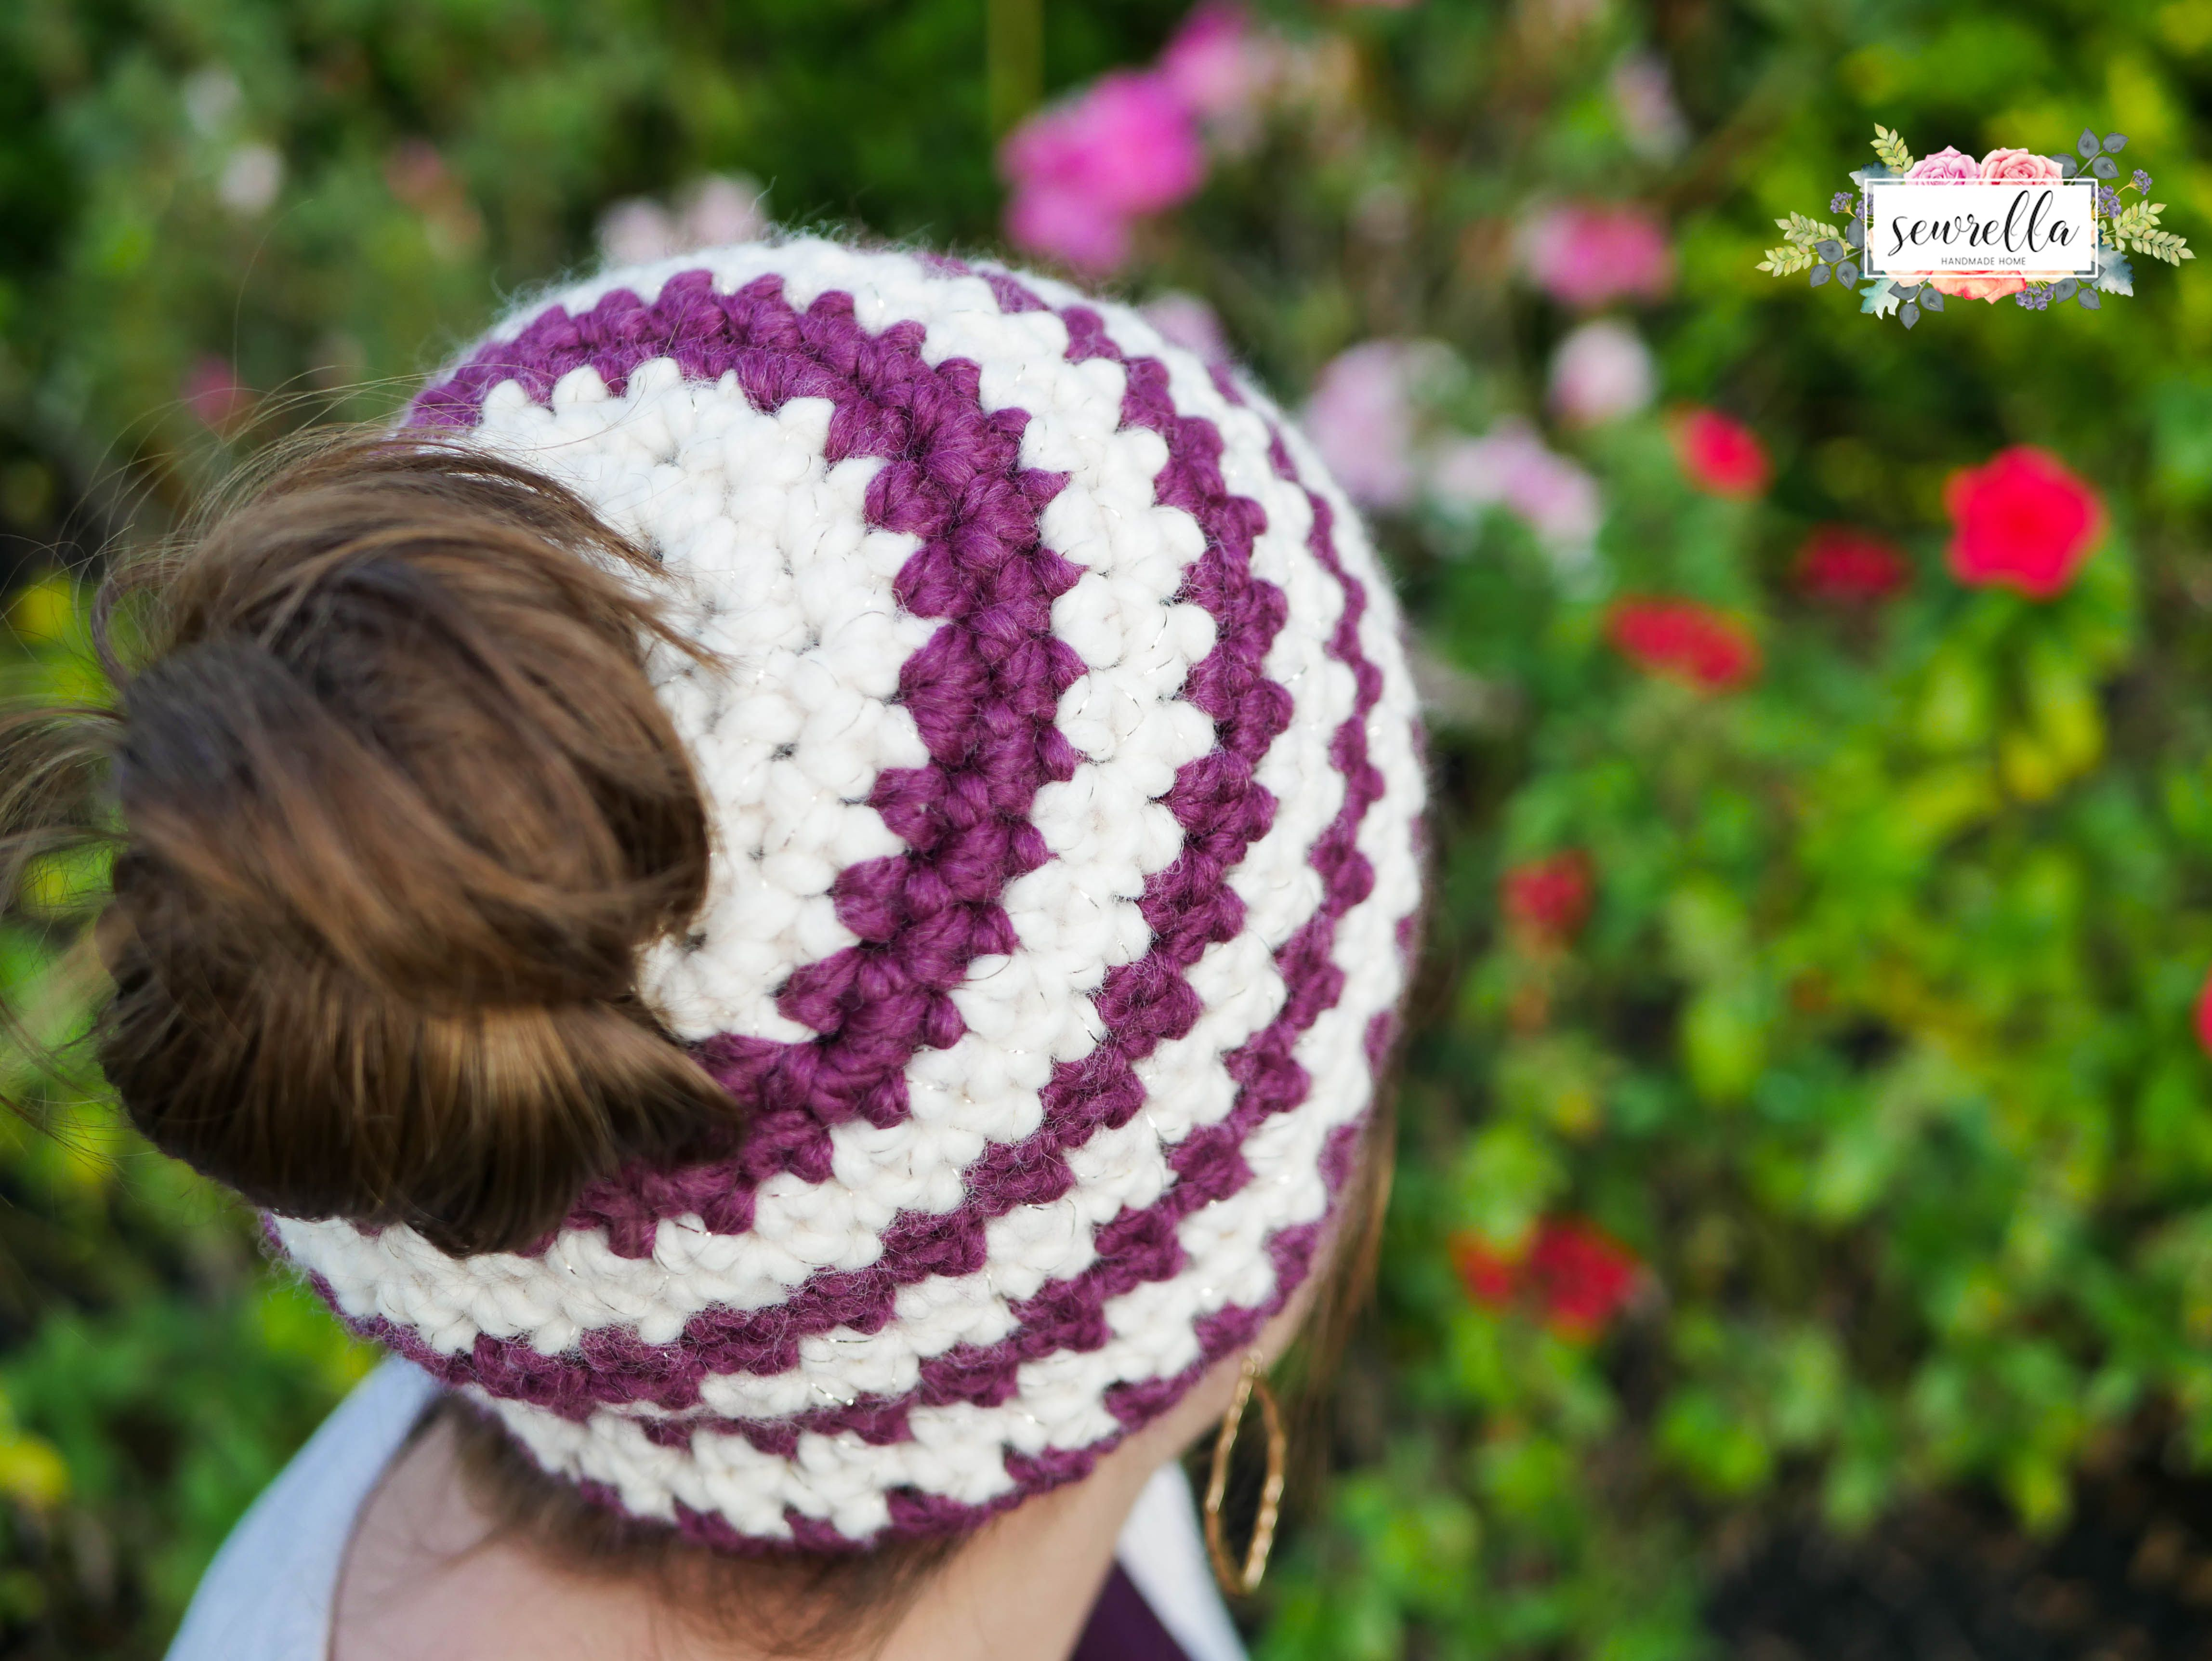 Crochet 1 hour Messy Bun Beanie | Messy buns, Crochet and Craft